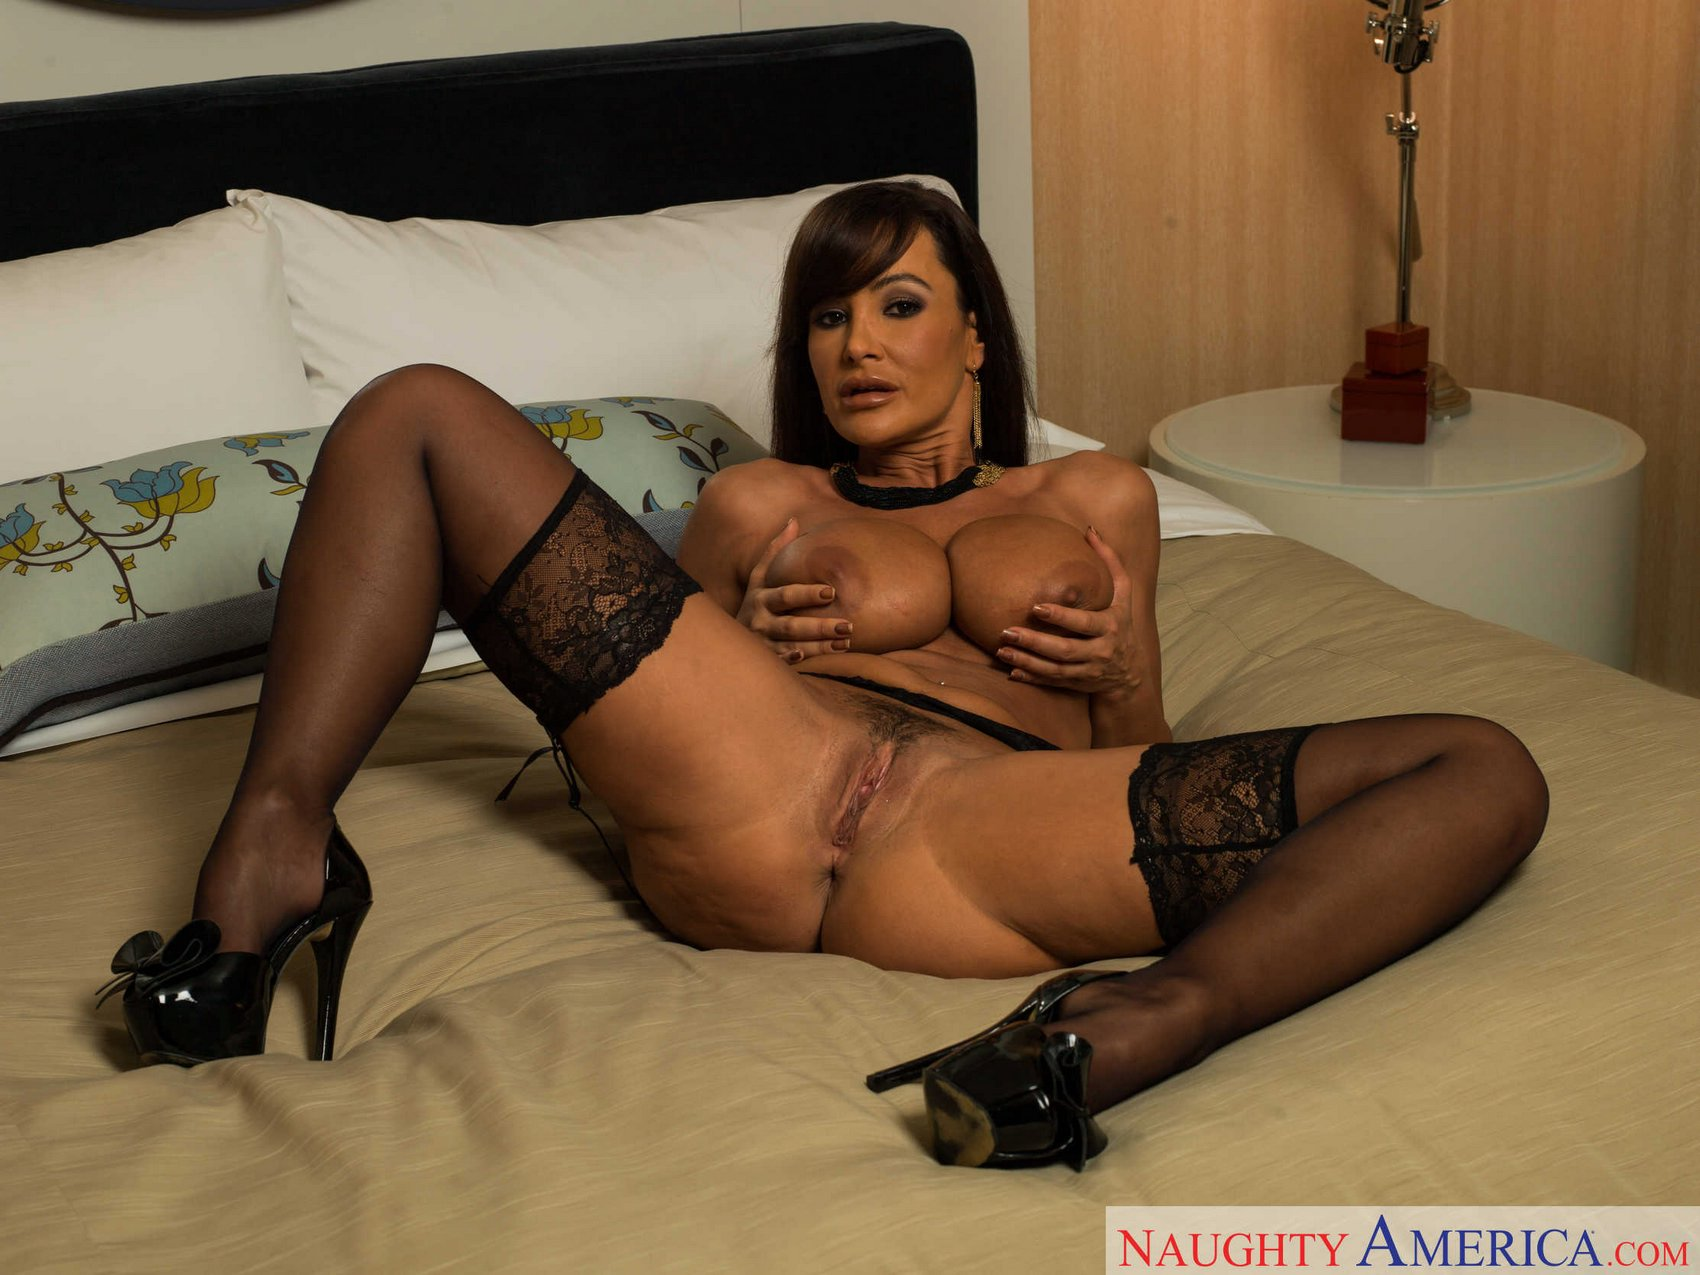 Lisa Ann results on a High Heels